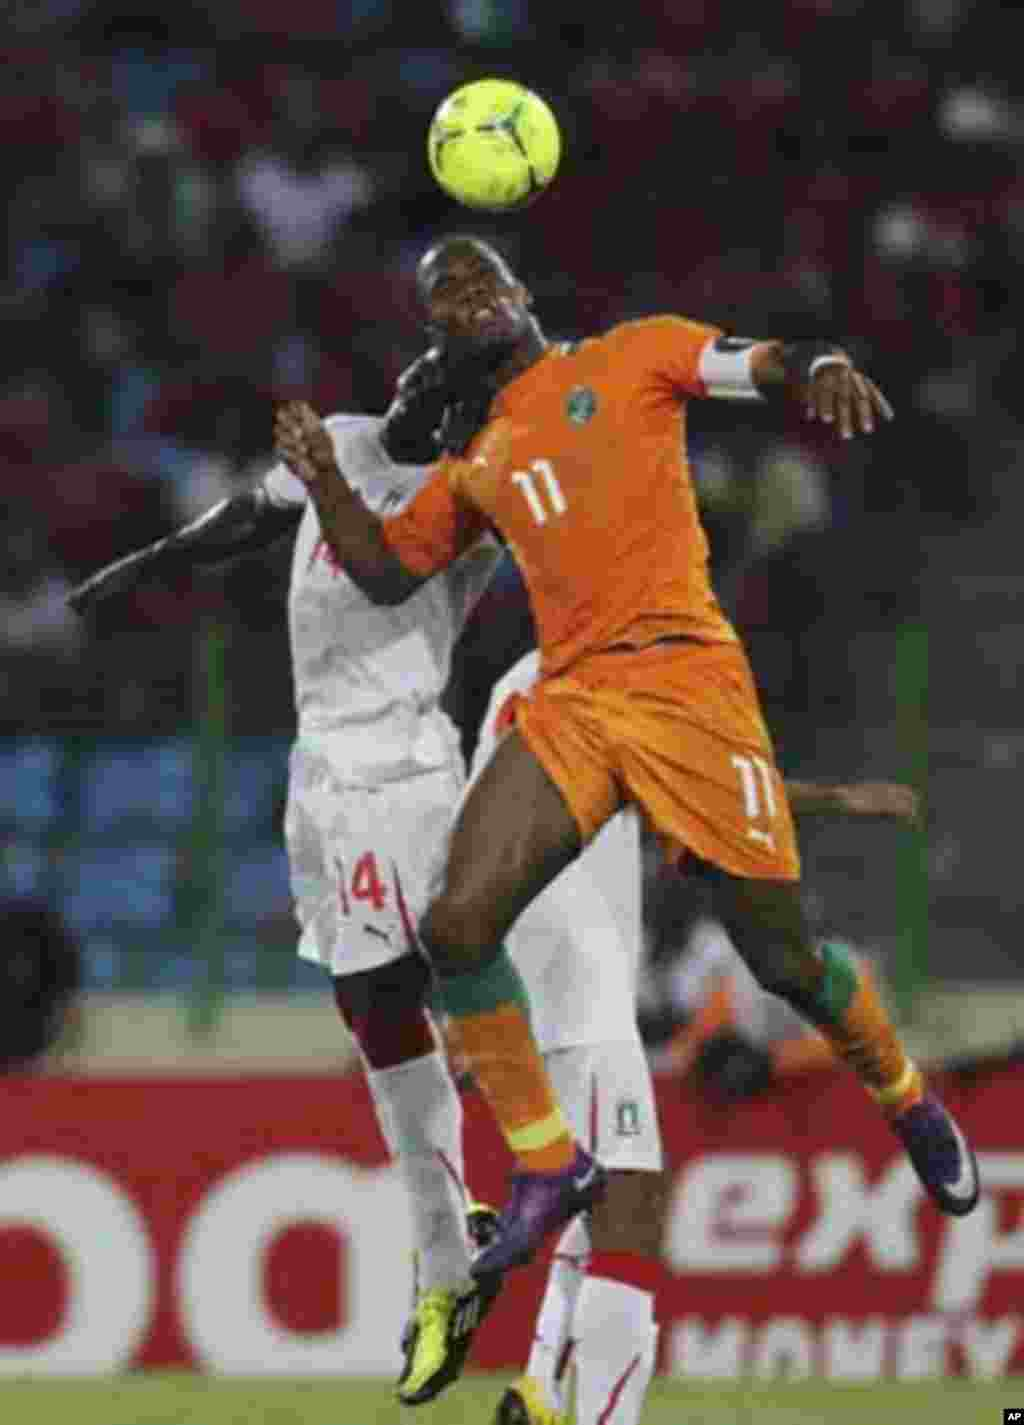 Didier Drogba (R) of Ivory Coast fights for the ball with Ben Konate of Equatorial Guinea during their quarter-final match at the African Nations Cup soccer tournament in Malabo February 4, 2012.